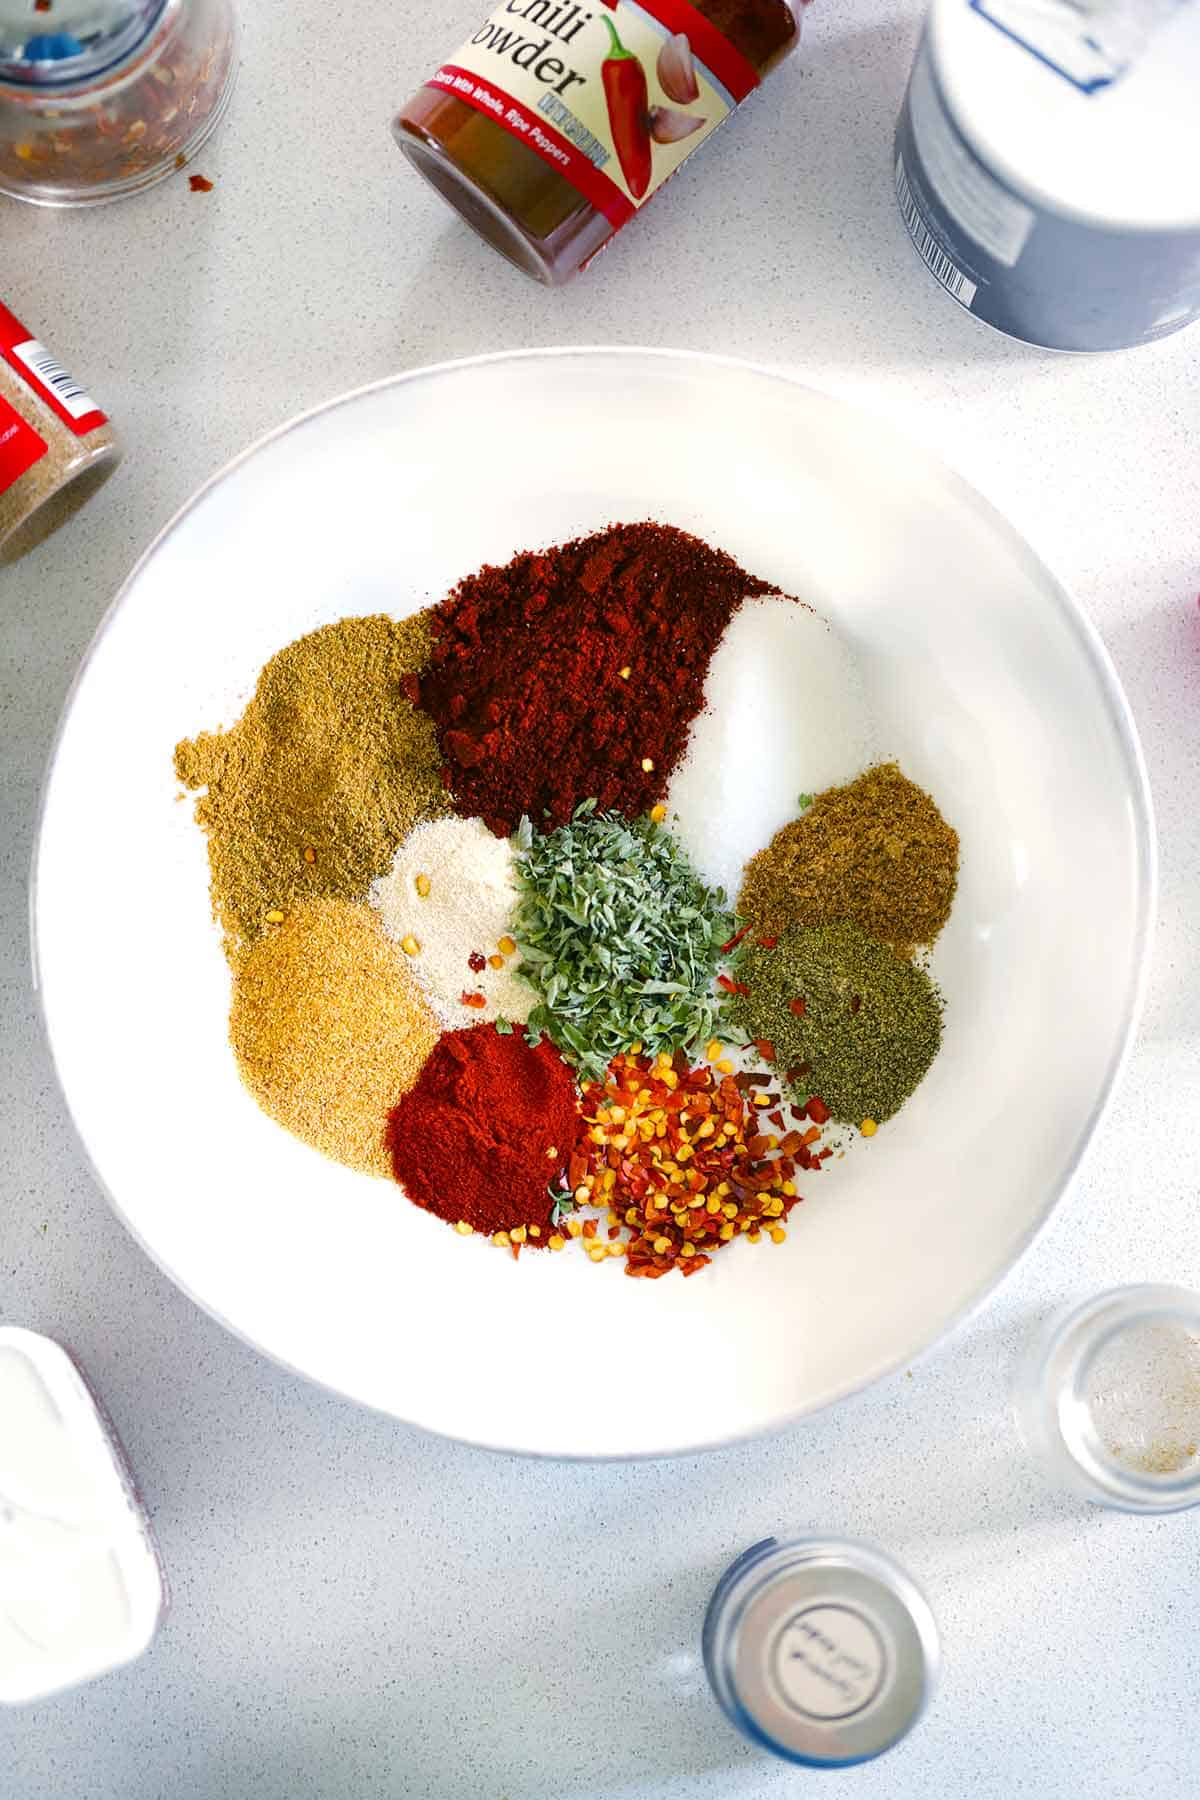 The ingredients for homemade taco seasoning in a white bowl.